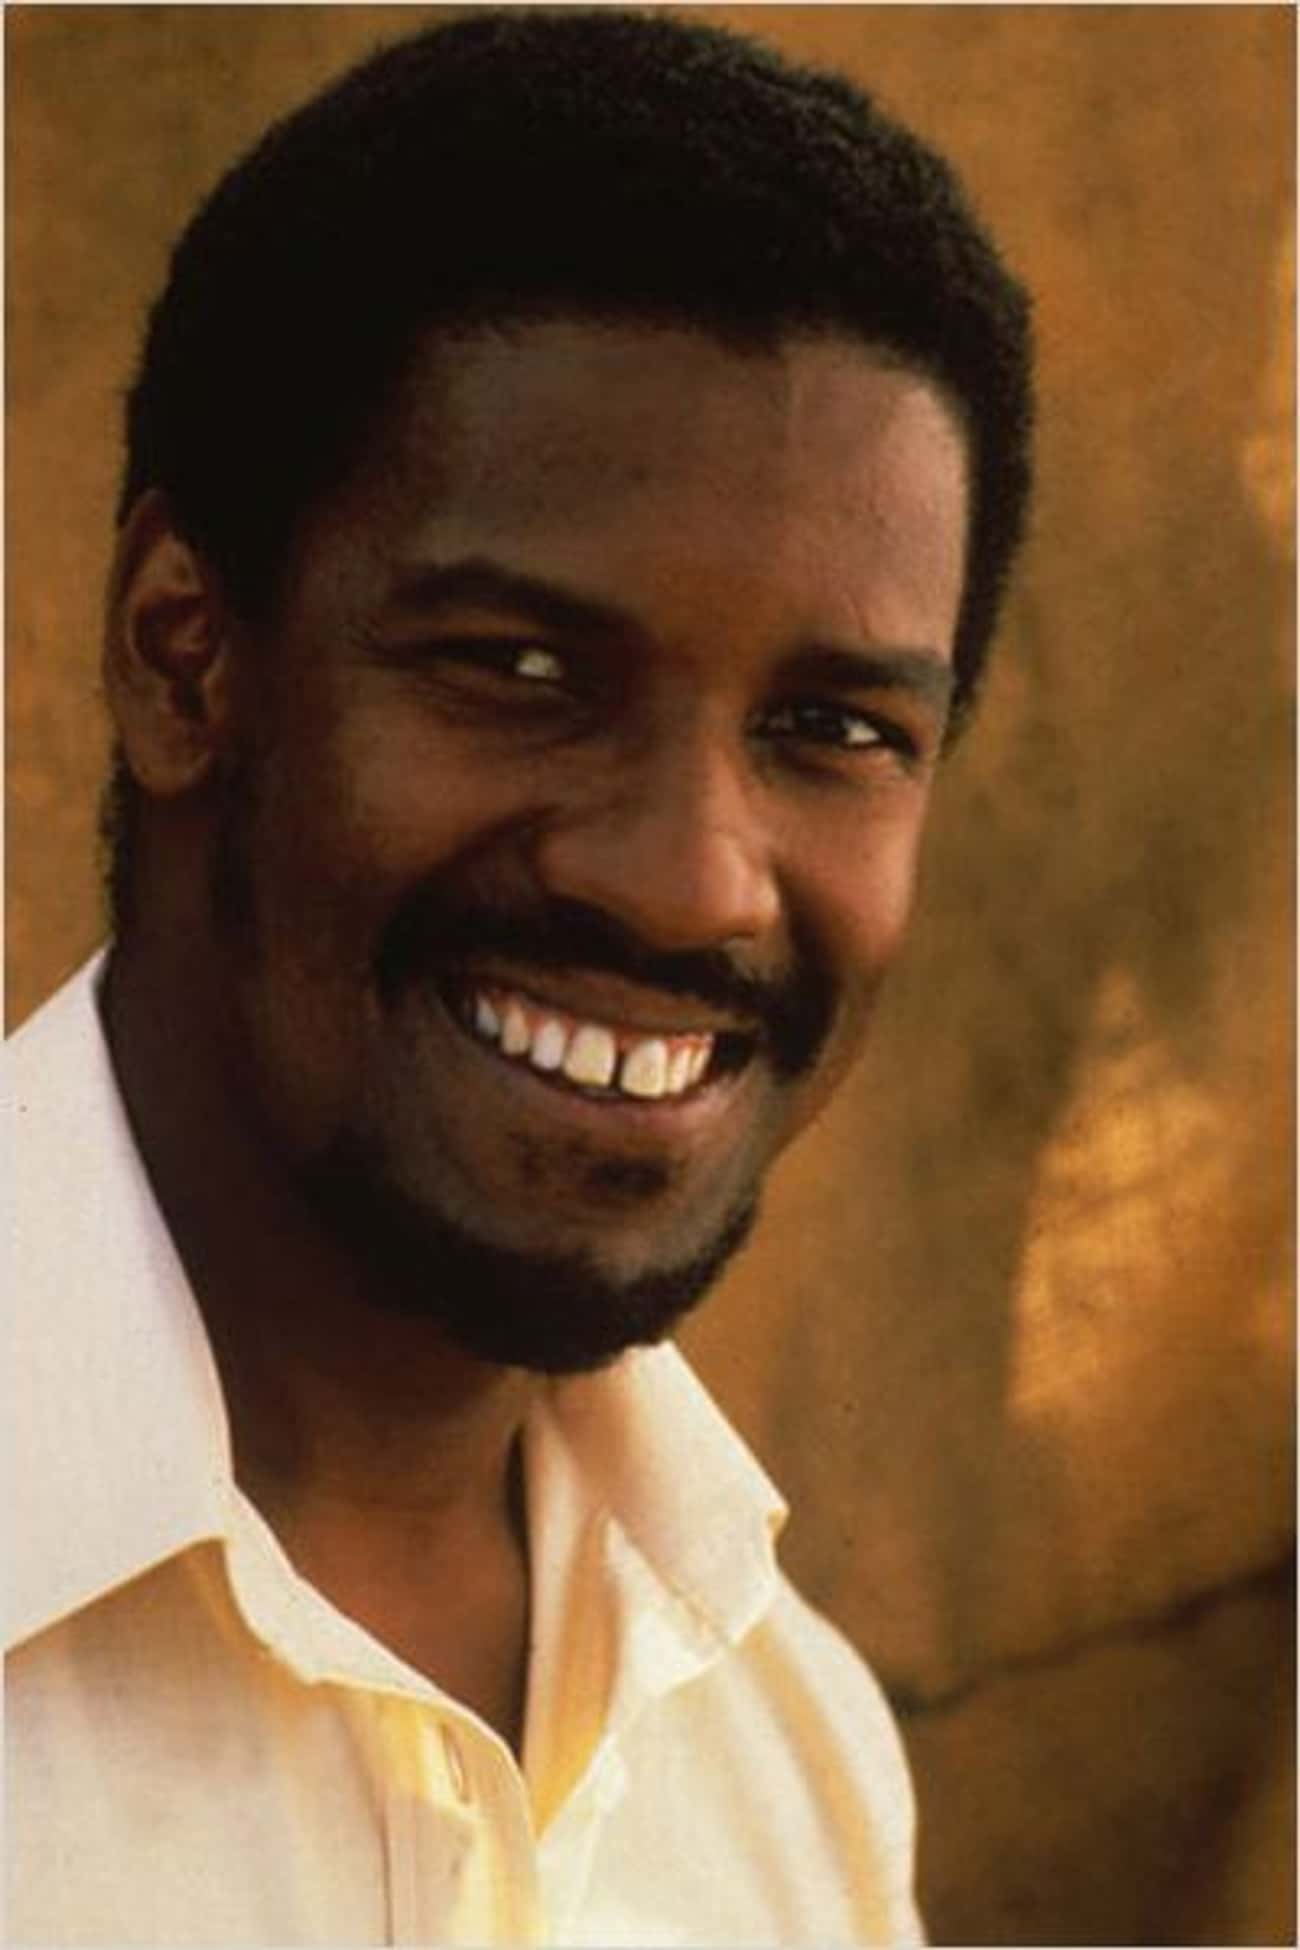 Young Denzel Washington in Pal is listed (or ranked) 3 on the list 20 Pictures of Young Denzel Washington